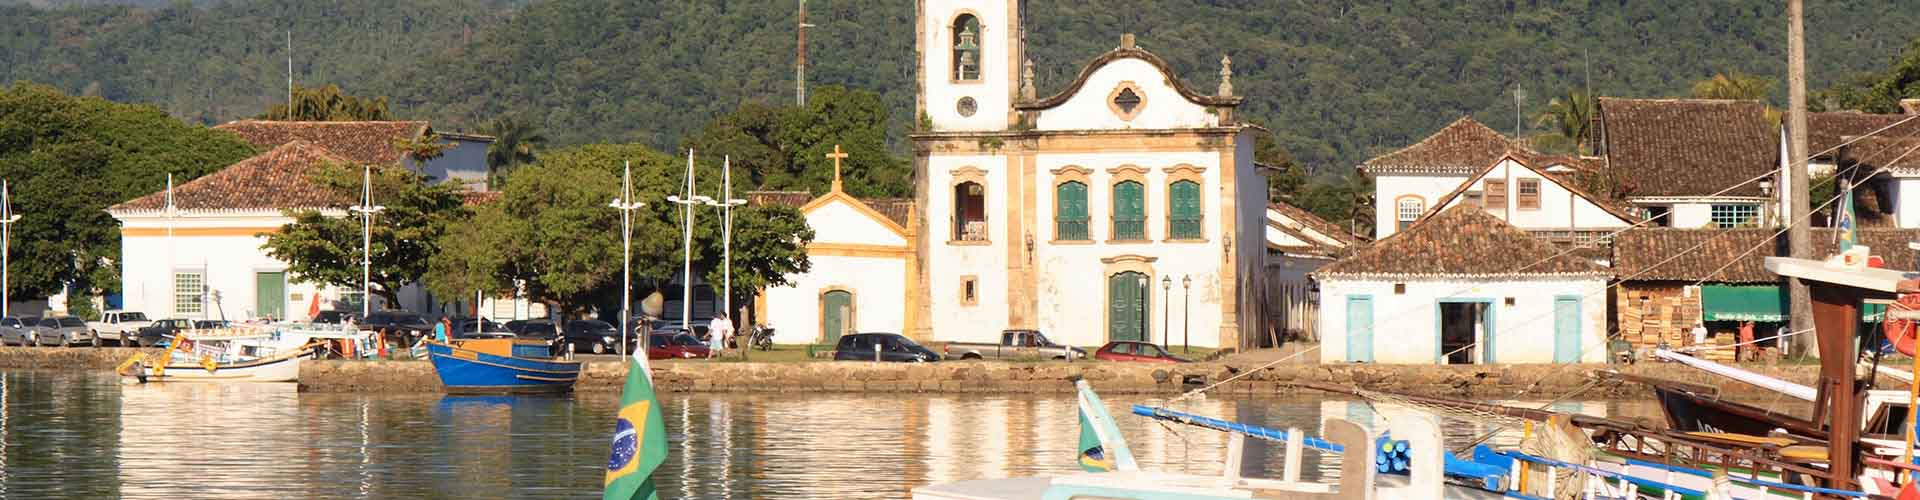 Paraty – Hostels in Paraty. Maps of Paraty, Photos and Reviews for each hostel in Paraty.